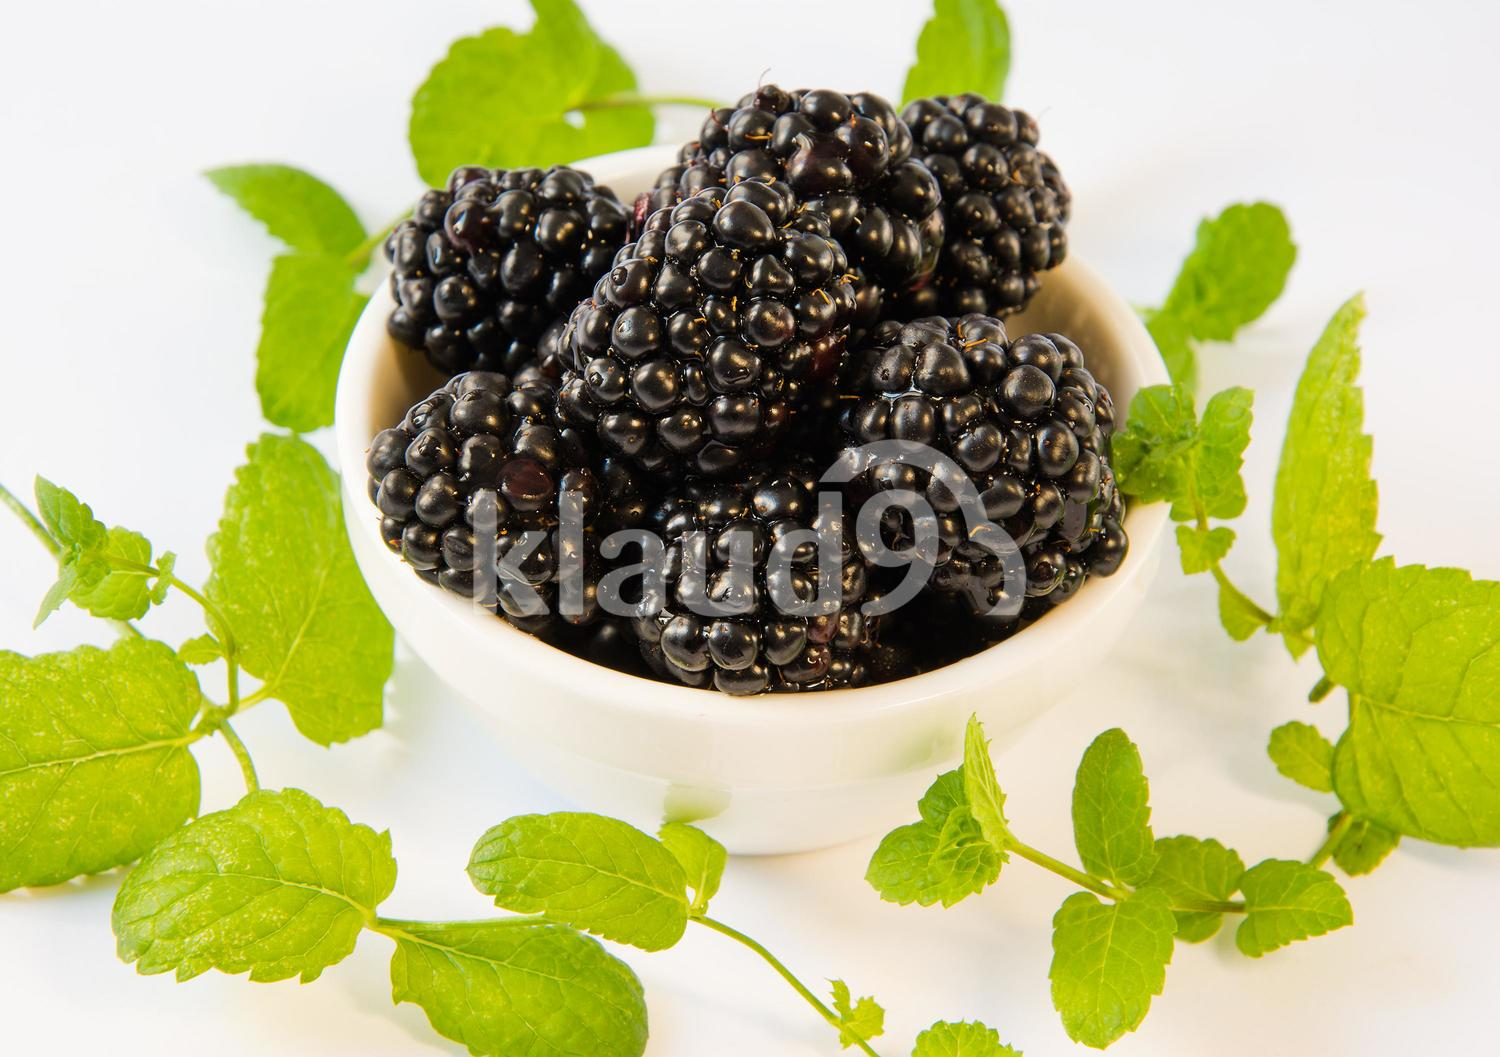 blackberries  in a  plate on a table